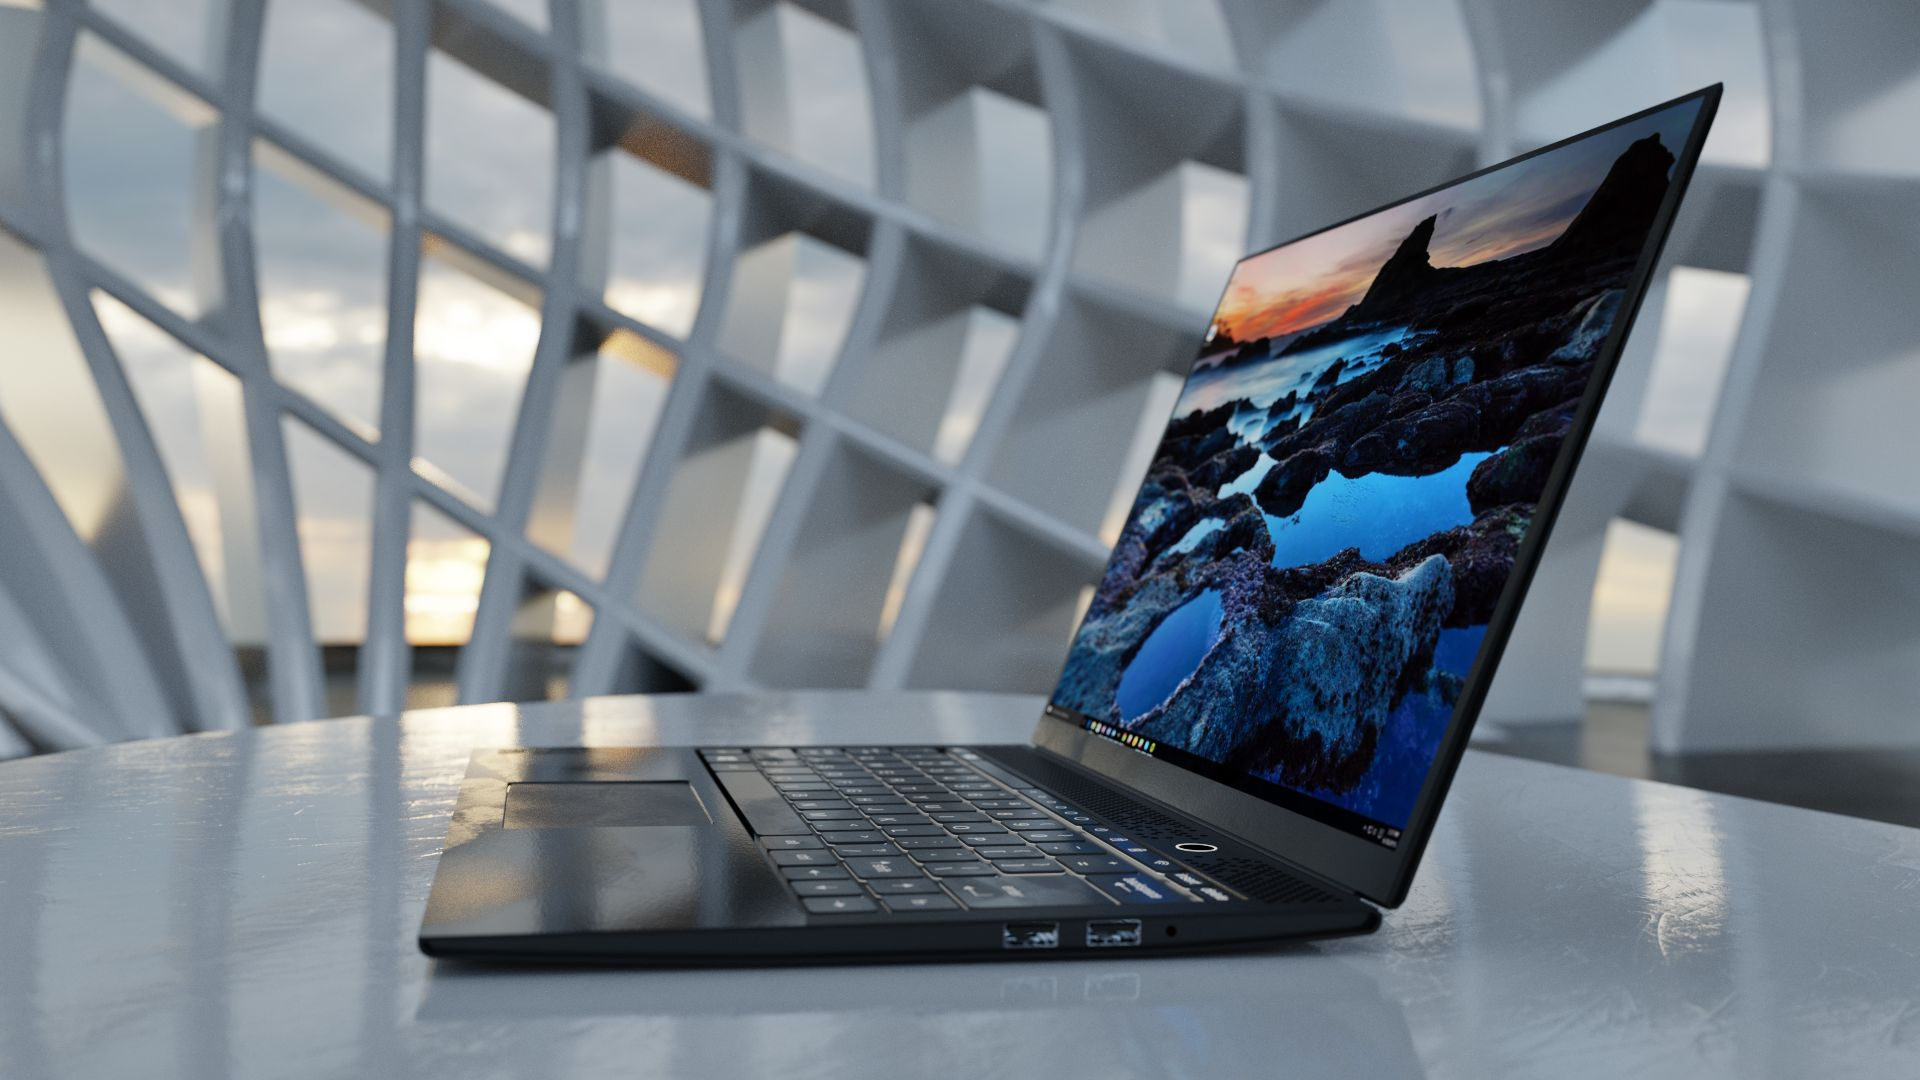 laptop sitting on a desk in an open room with a modern architectural design with sunlight shining through the windows